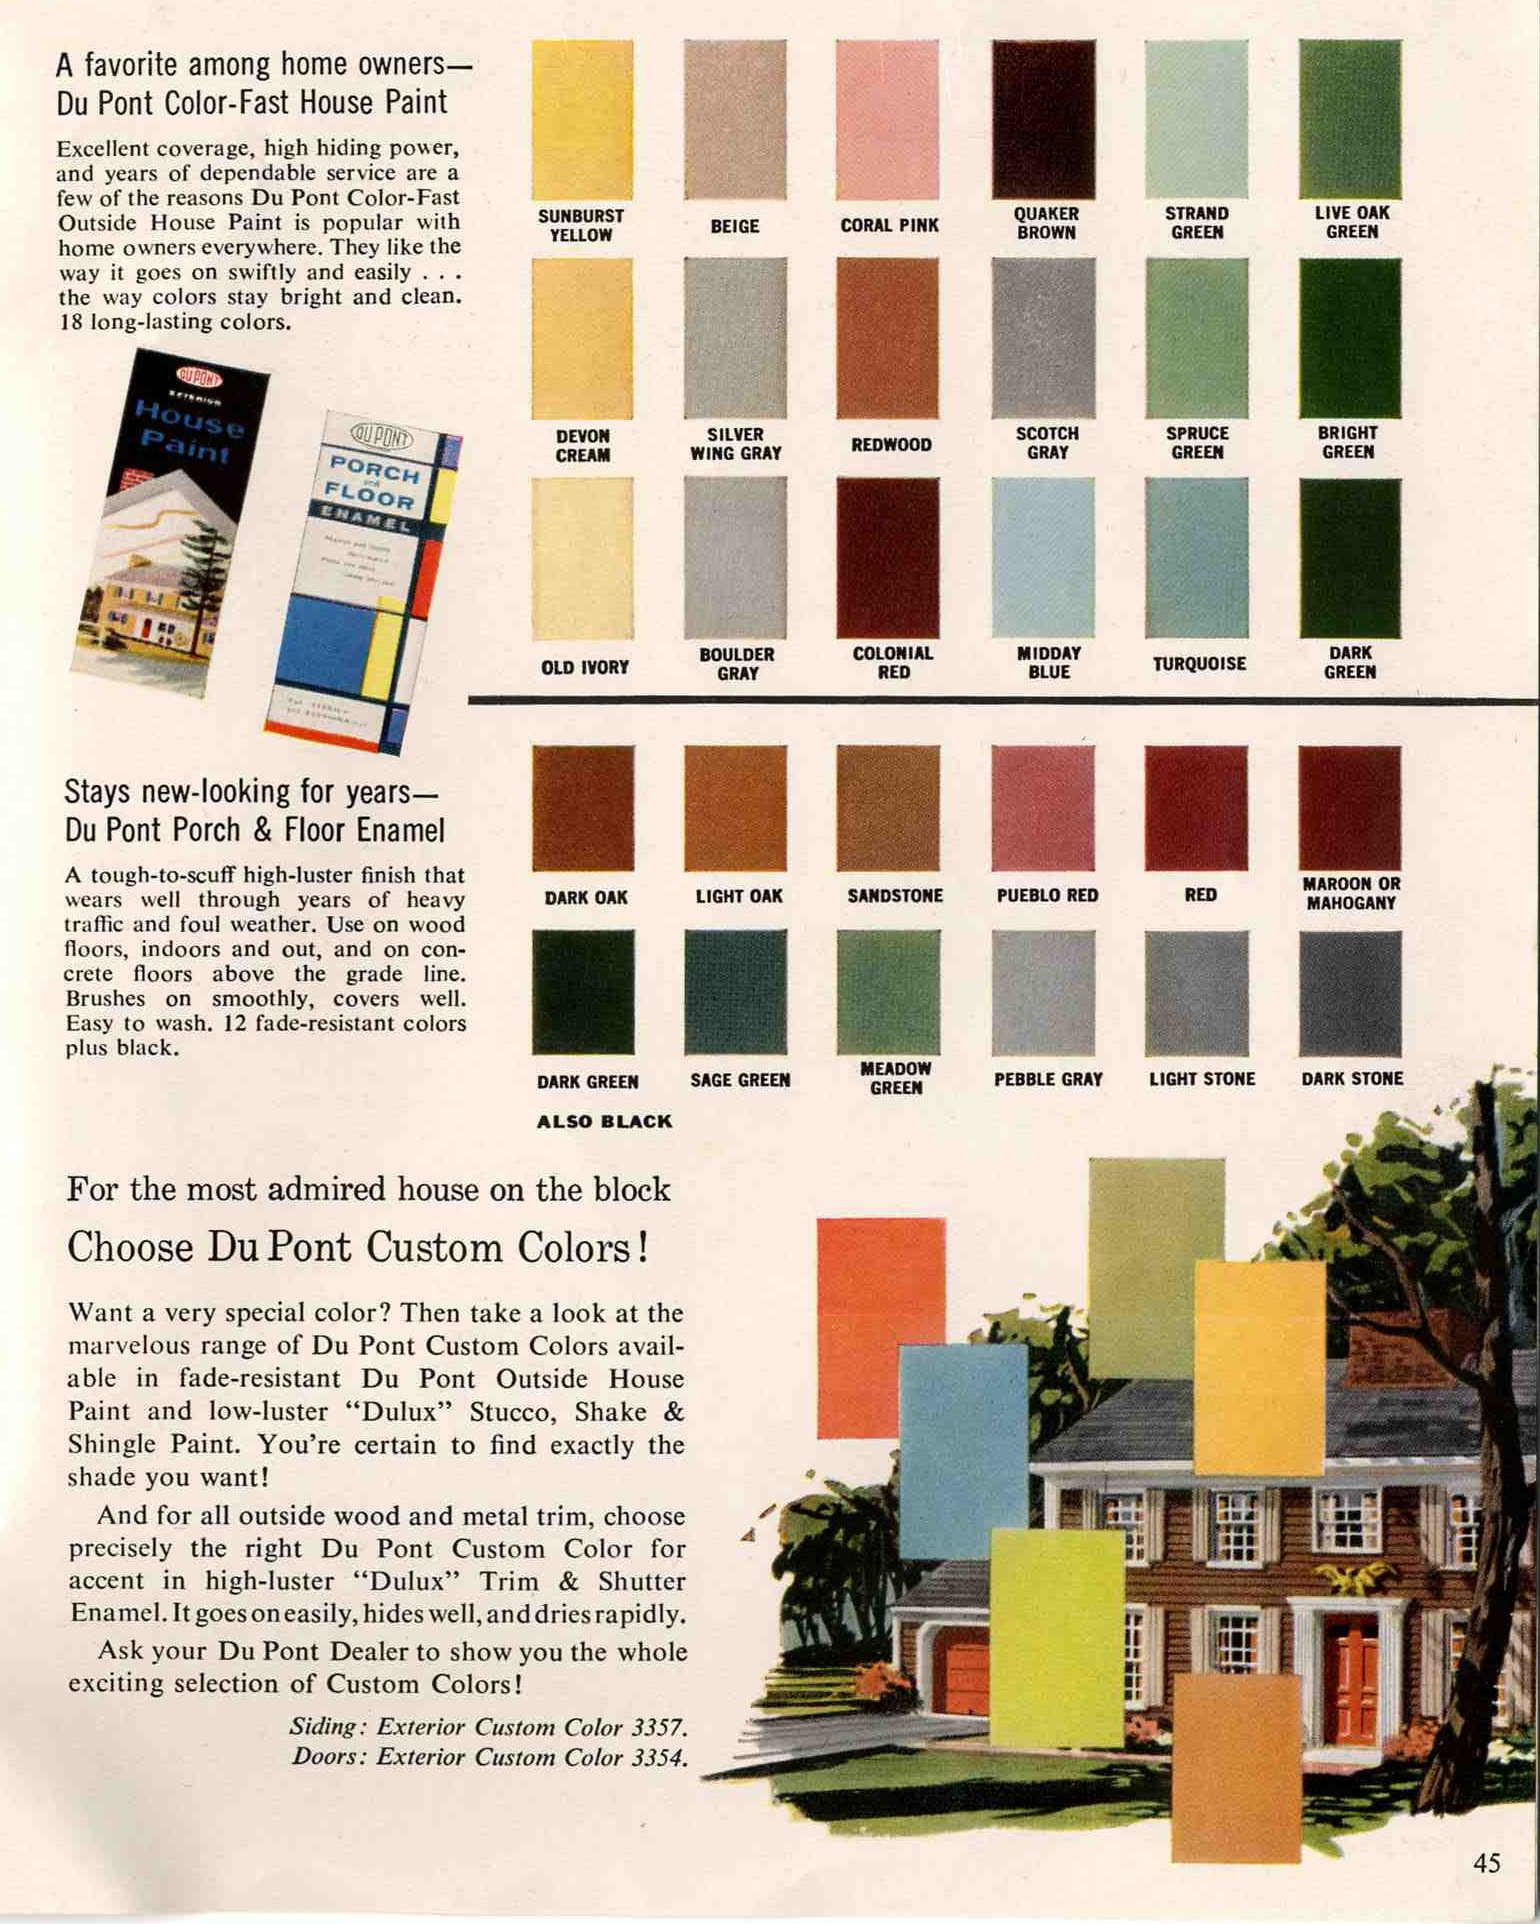 Astonishing Exterior Colors For 1960 Houses Retro Renovation Largest Home Design Picture Inspirations Pitcheantrous